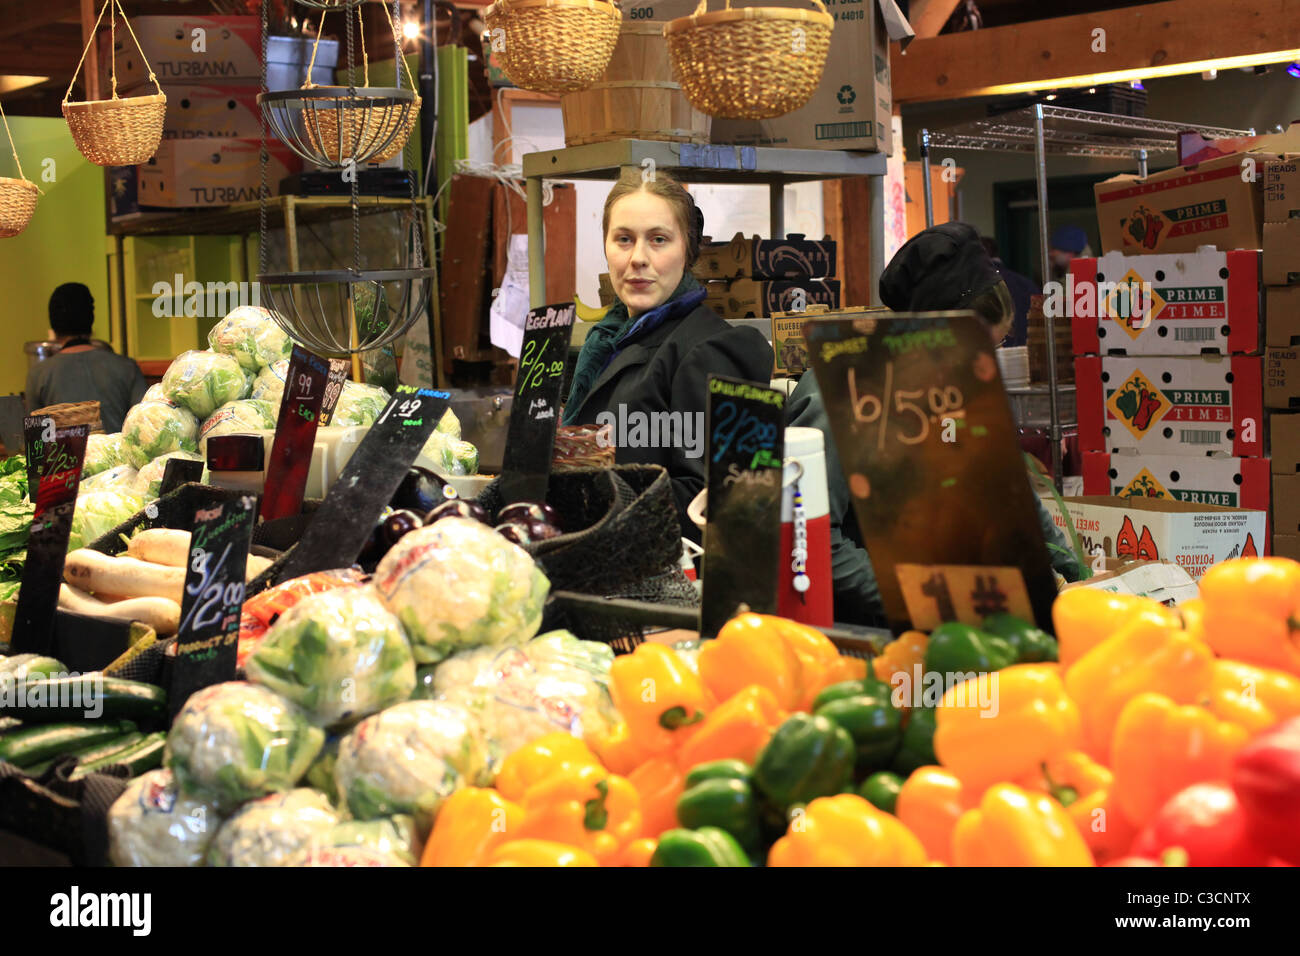 Amish woman selling local products at St. Jacobs farmers' market in Ontario Canada 2011 Stock Photo